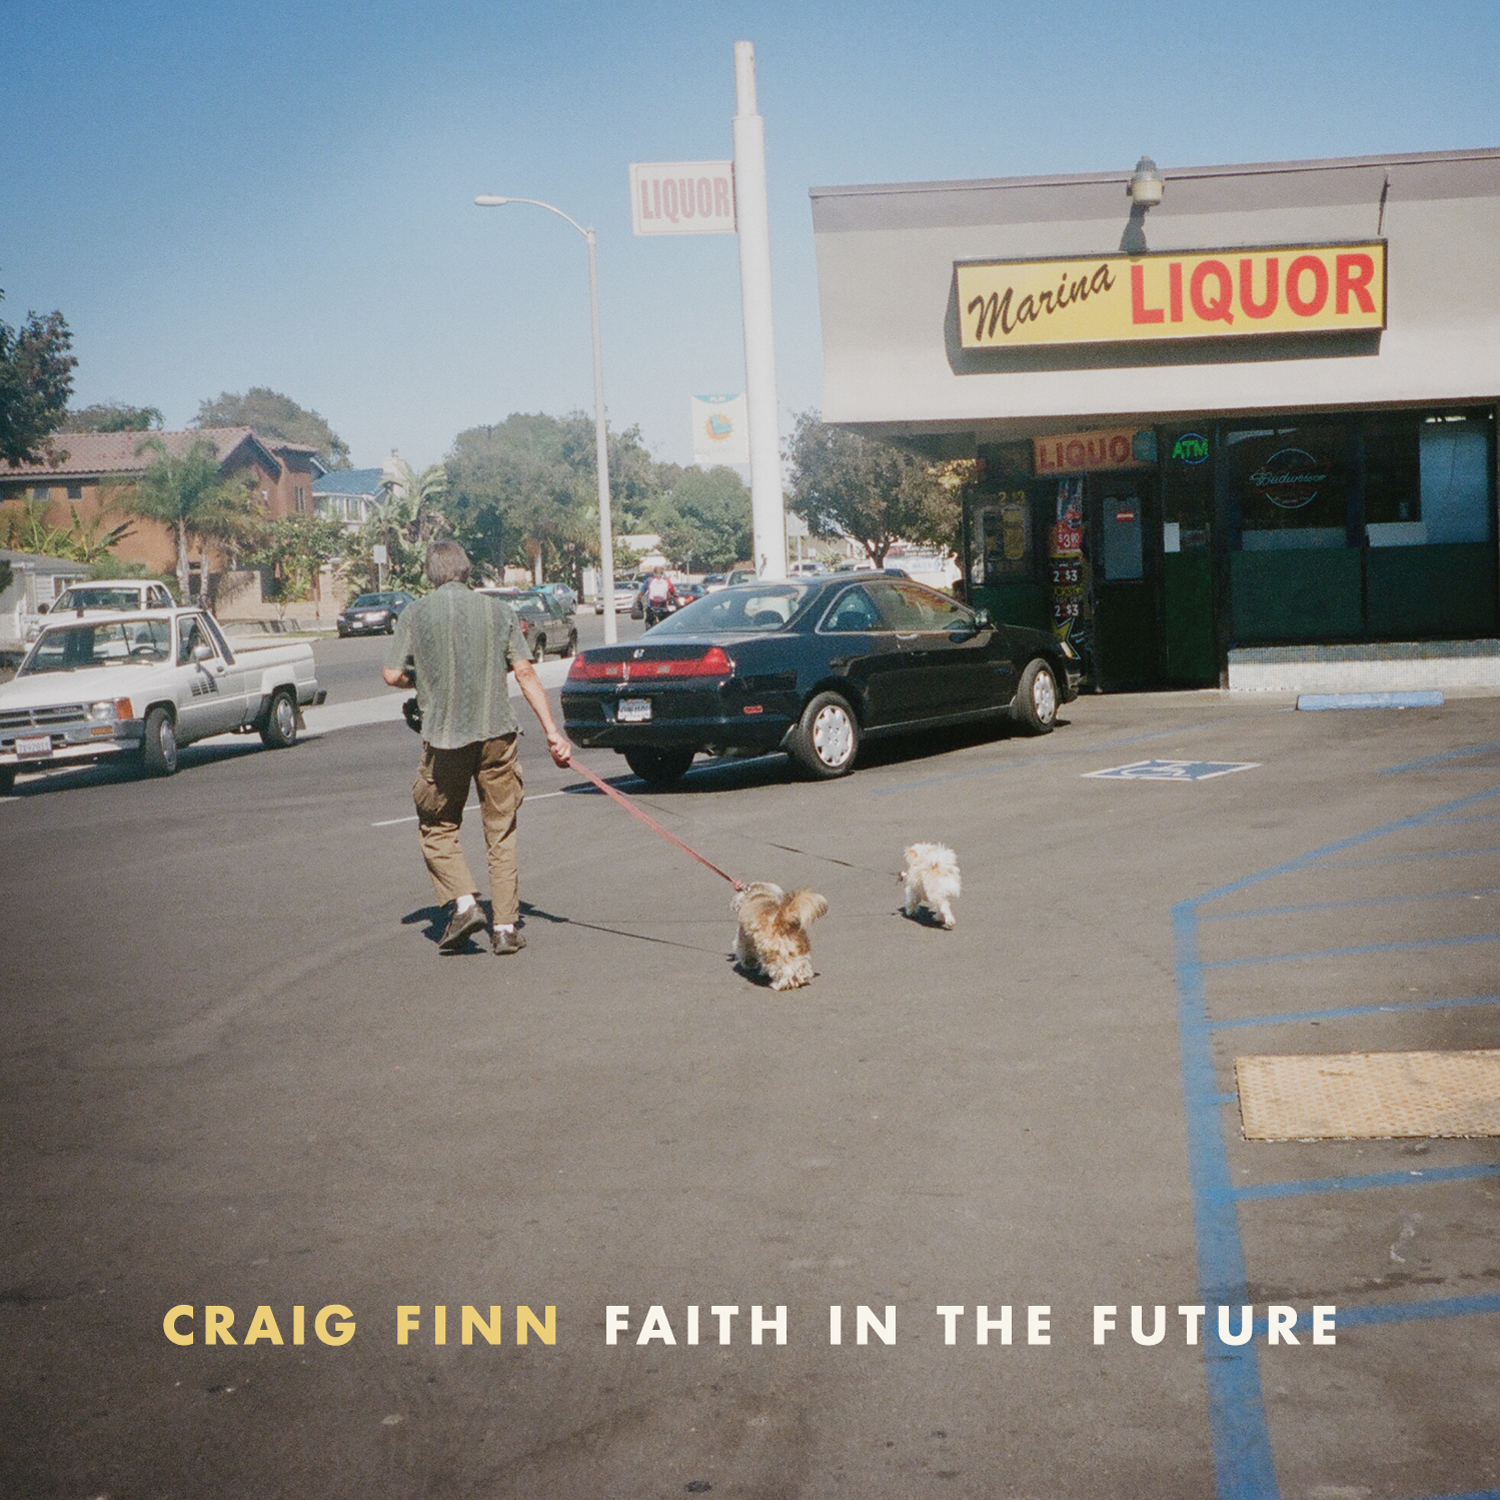 Newmyer's Roof (Free Single Download) - Craig Finn